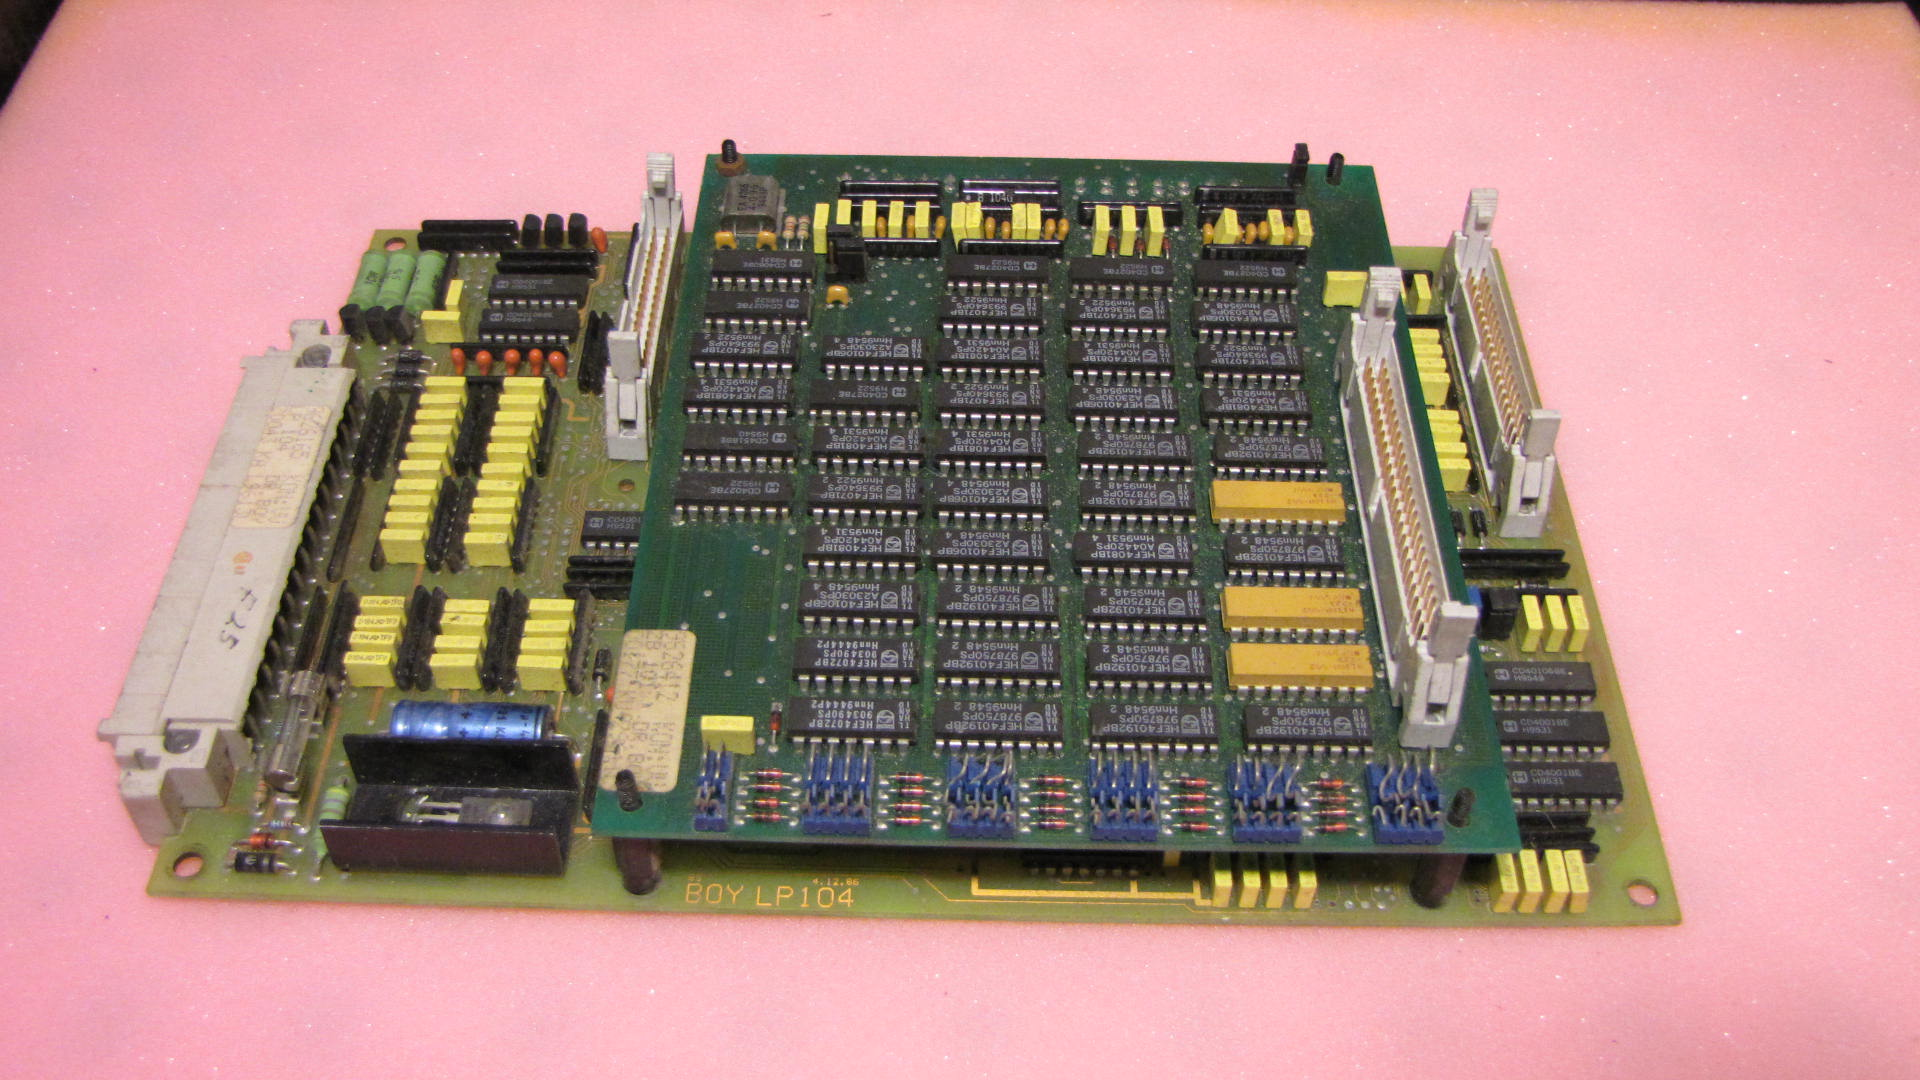 BOY Dipronic LP 104 control card